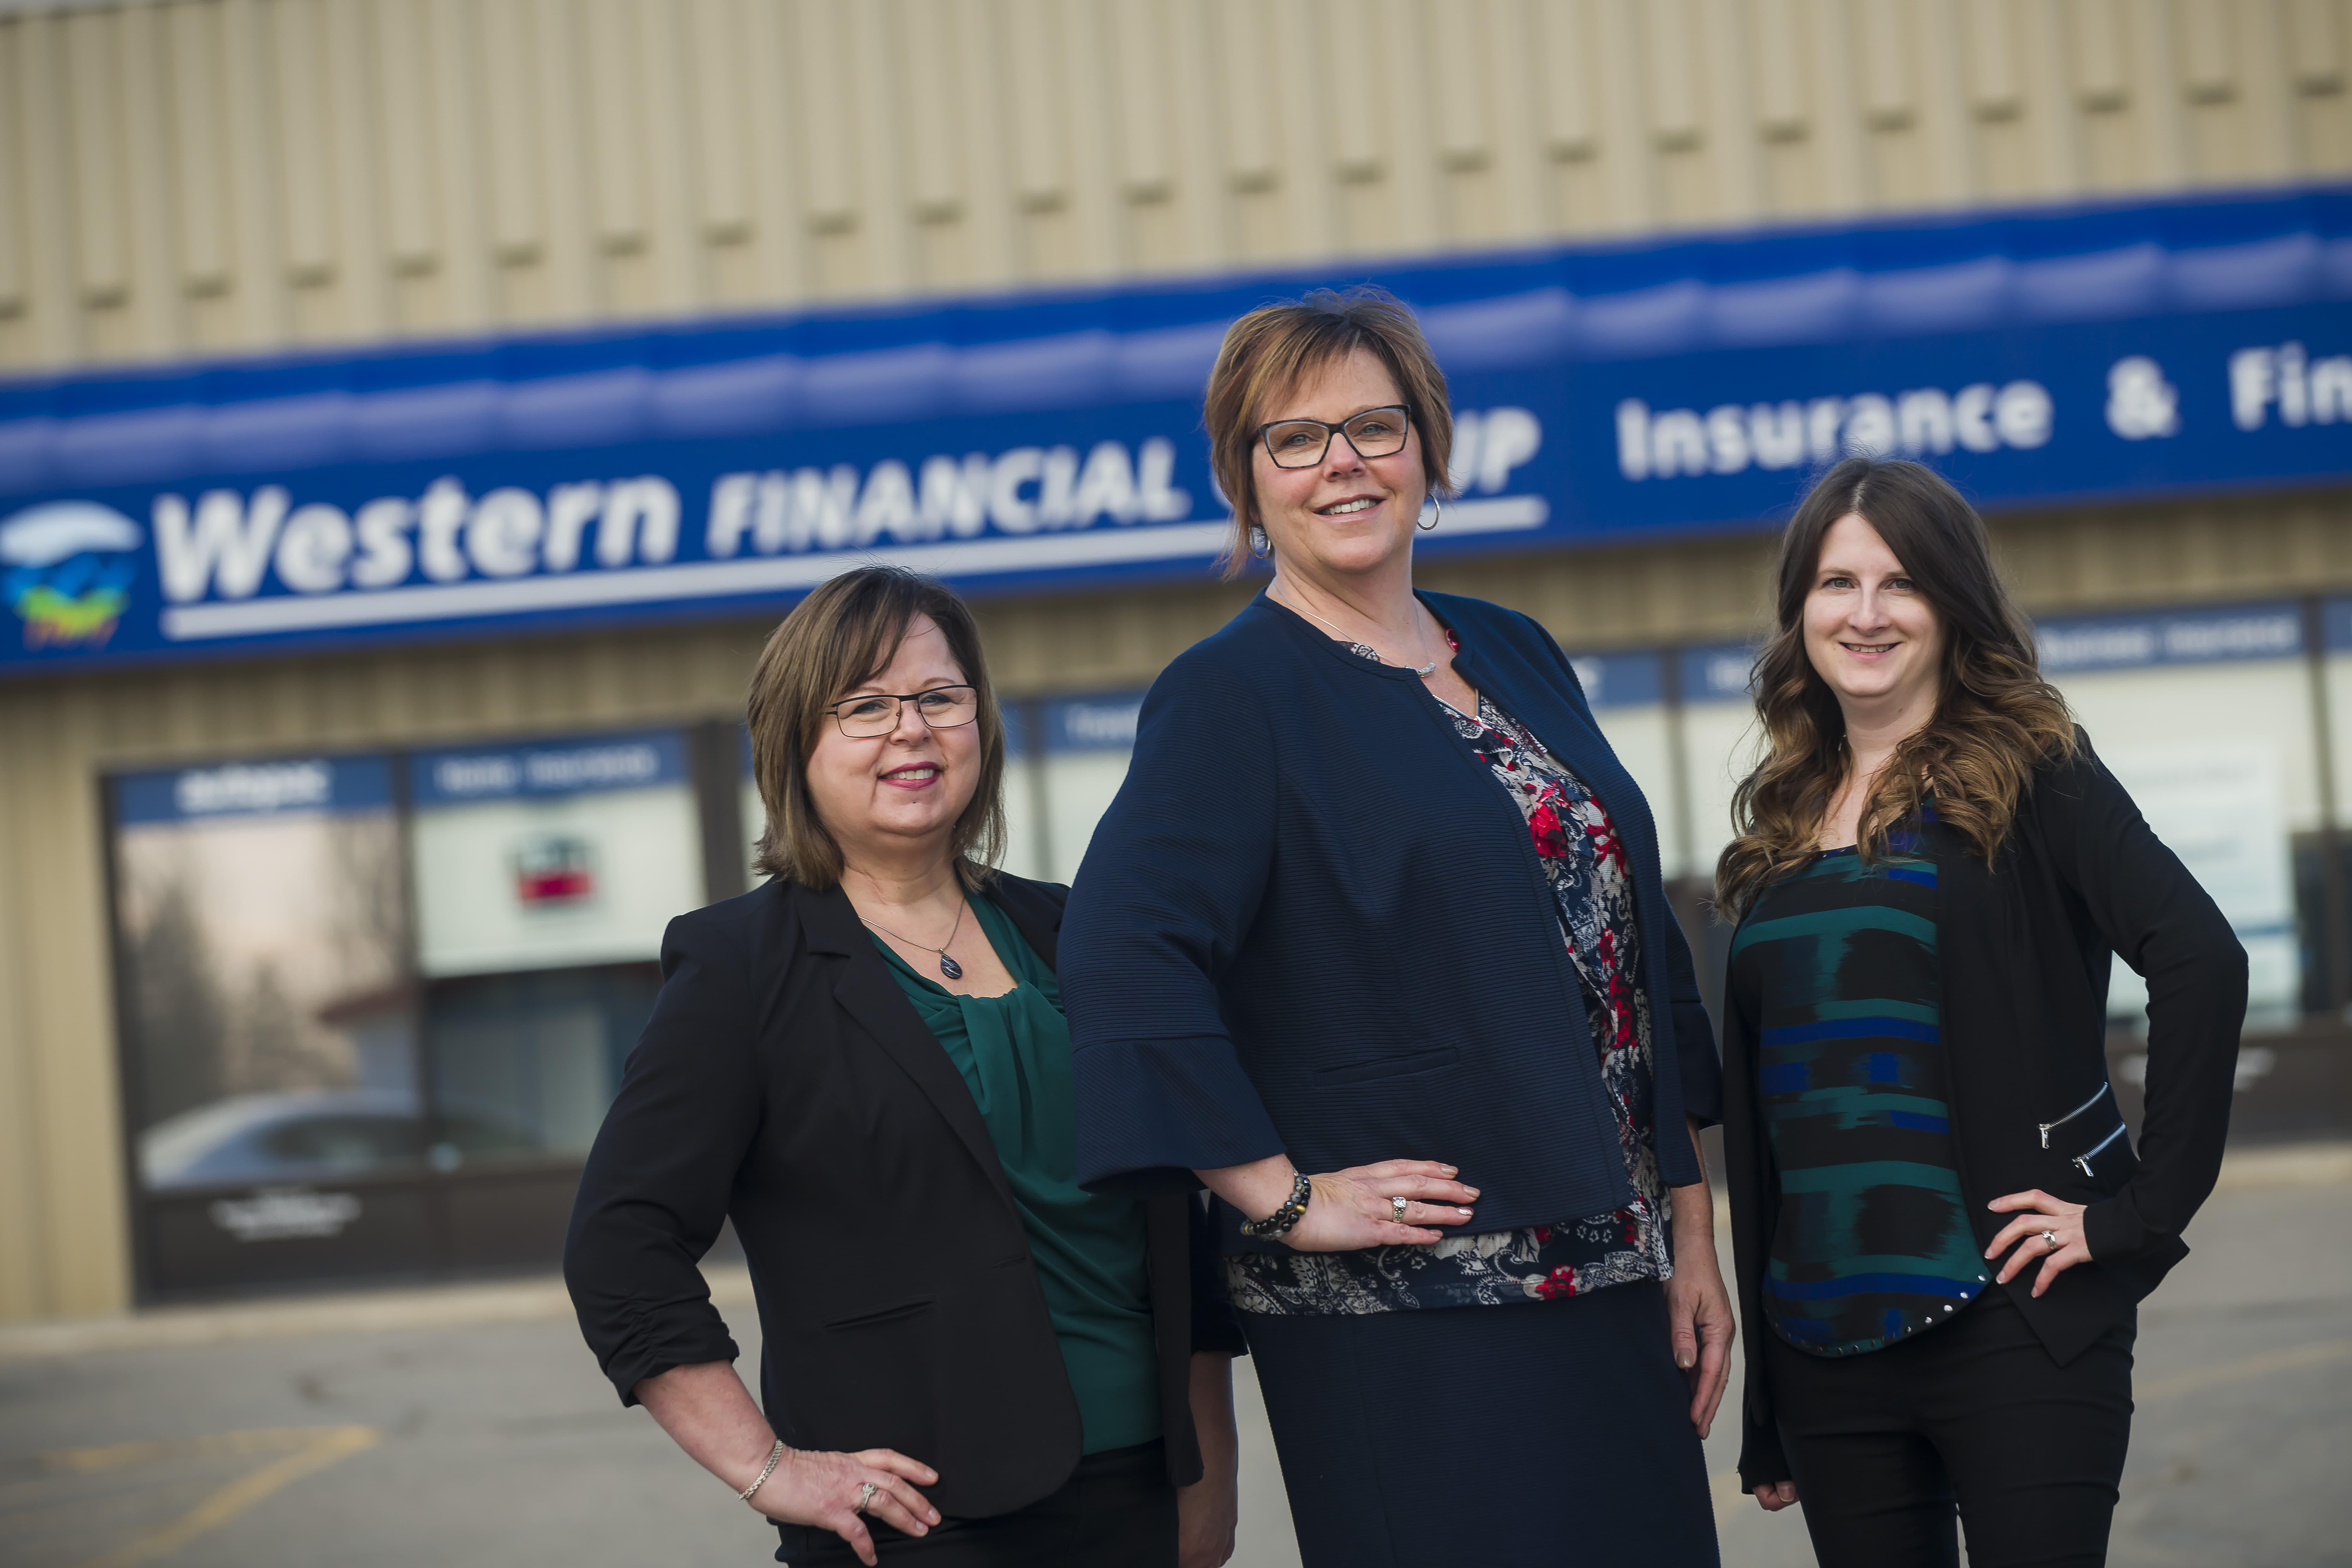 The Western Financial Group Brandon team is celebrating their 100th year in business